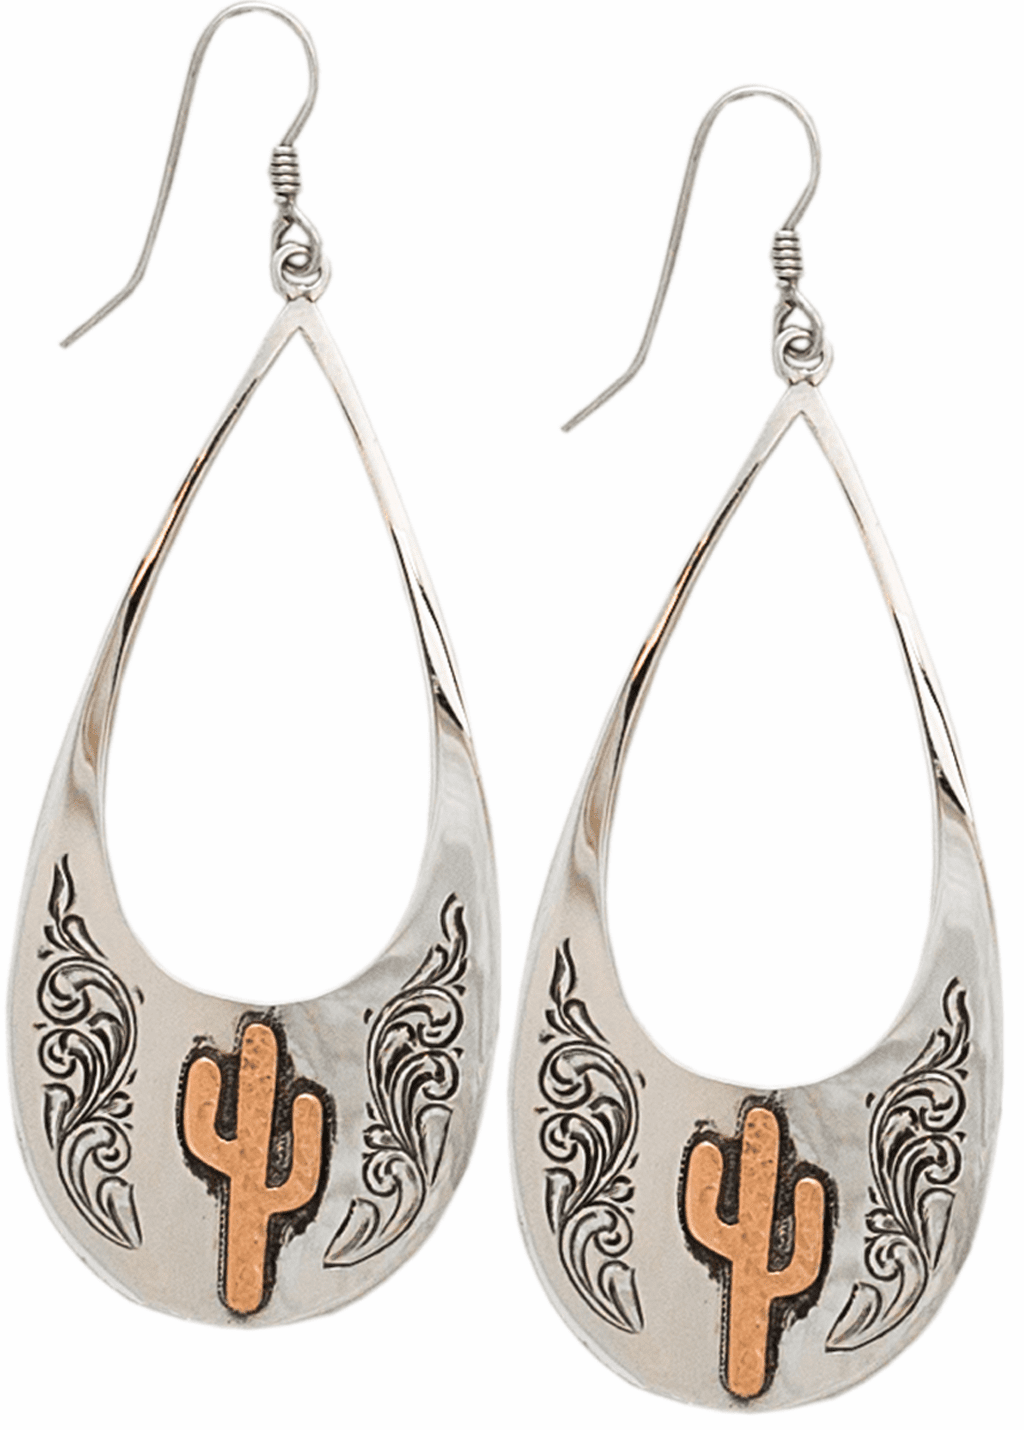 HAND ENGRAVED STERLING SILVER OPEN TEARDROPS WITH COPPER CACTUS